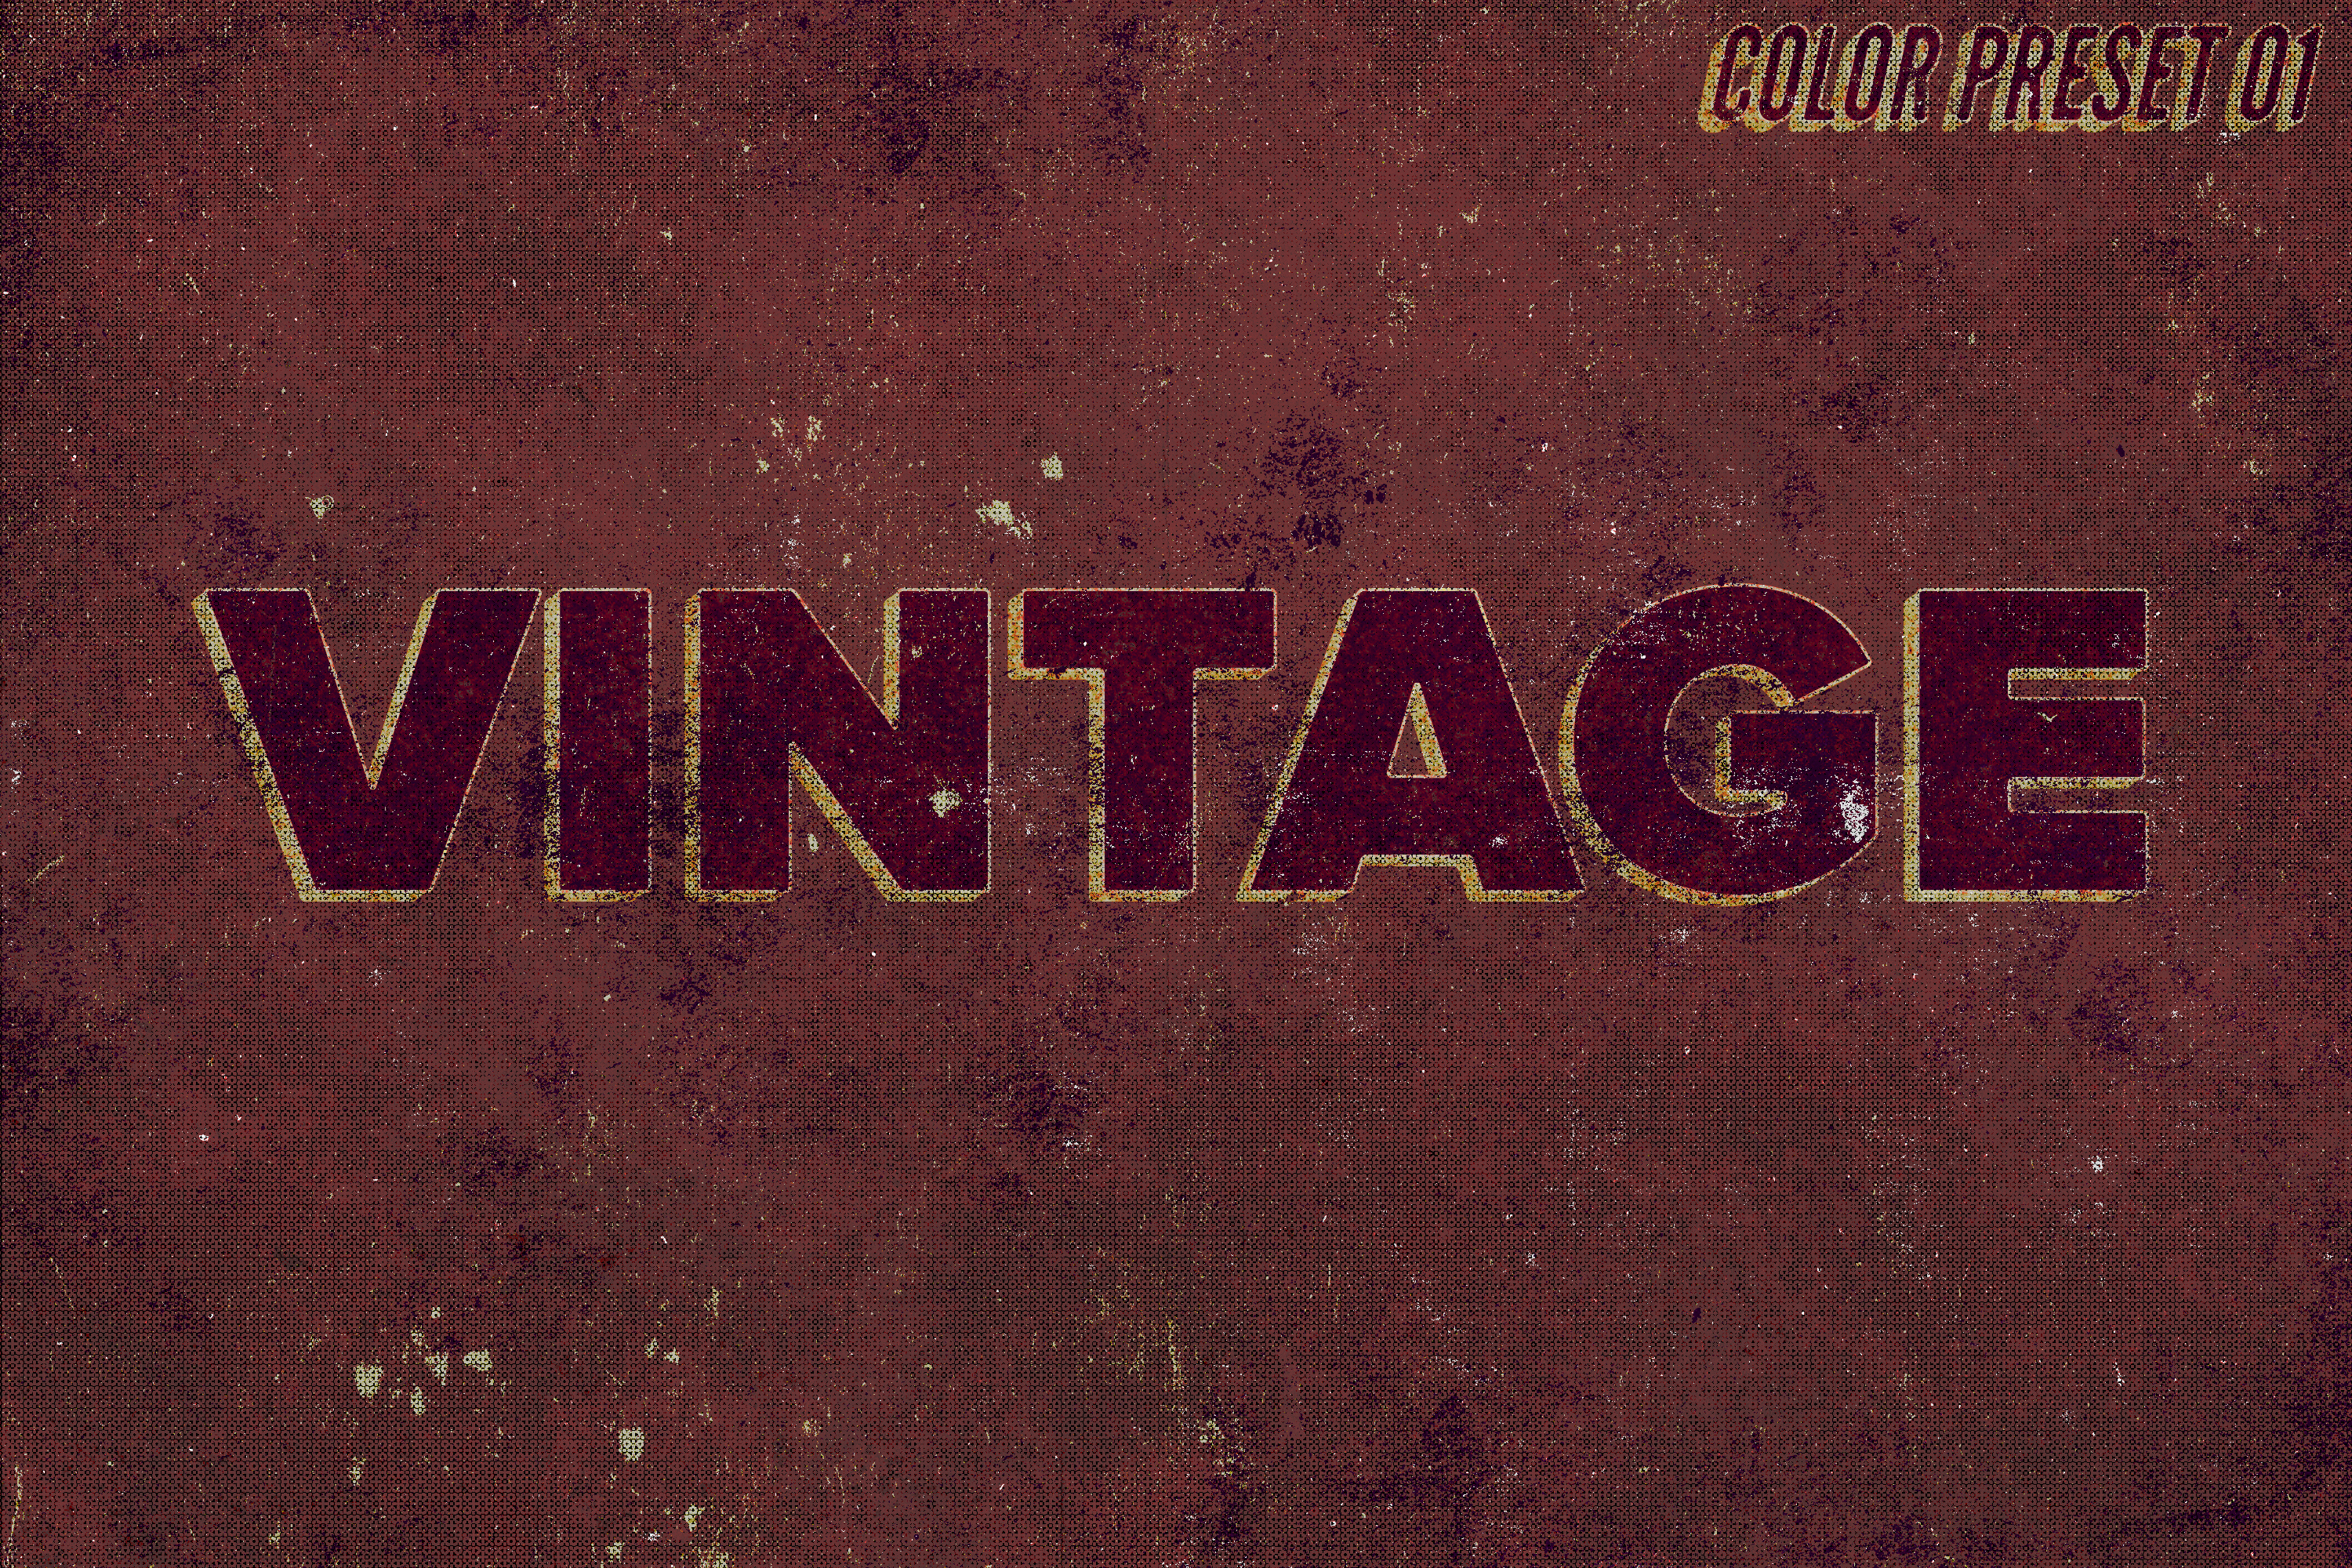 Grunge - Vintage Text Effect example image 3